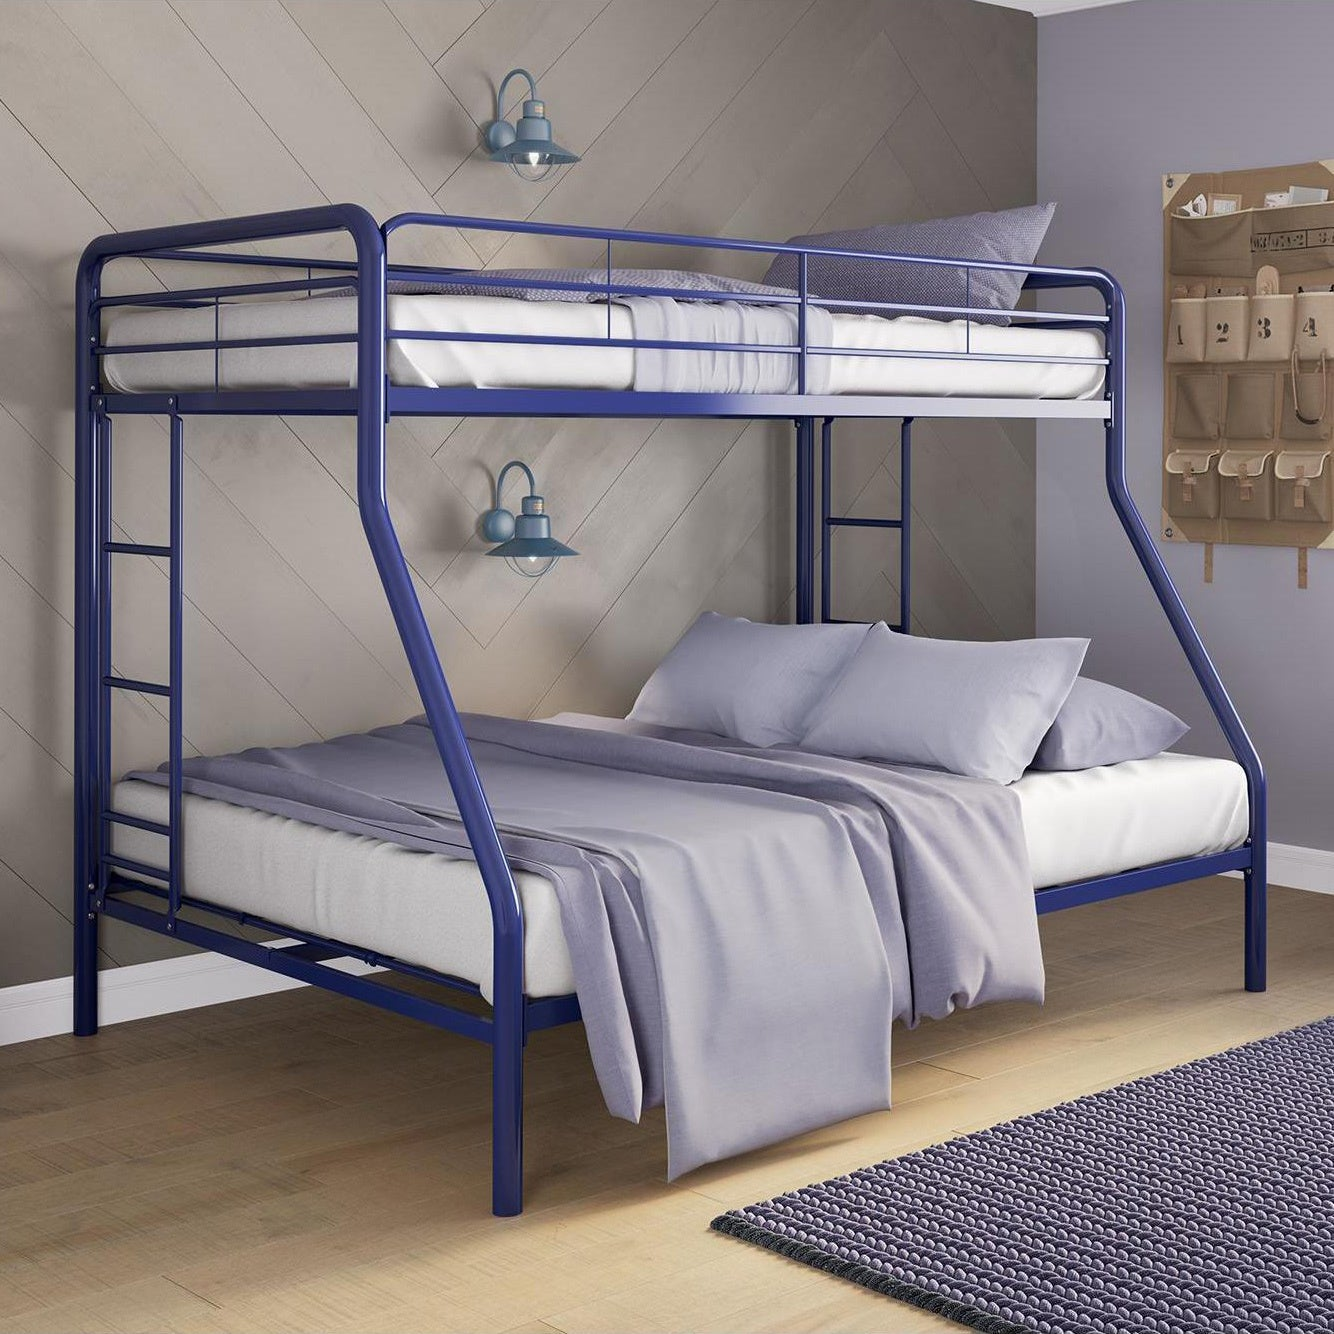 Shop Dhp Metal Twin Over Full Bunk Bed Overstock 17833634 Pink